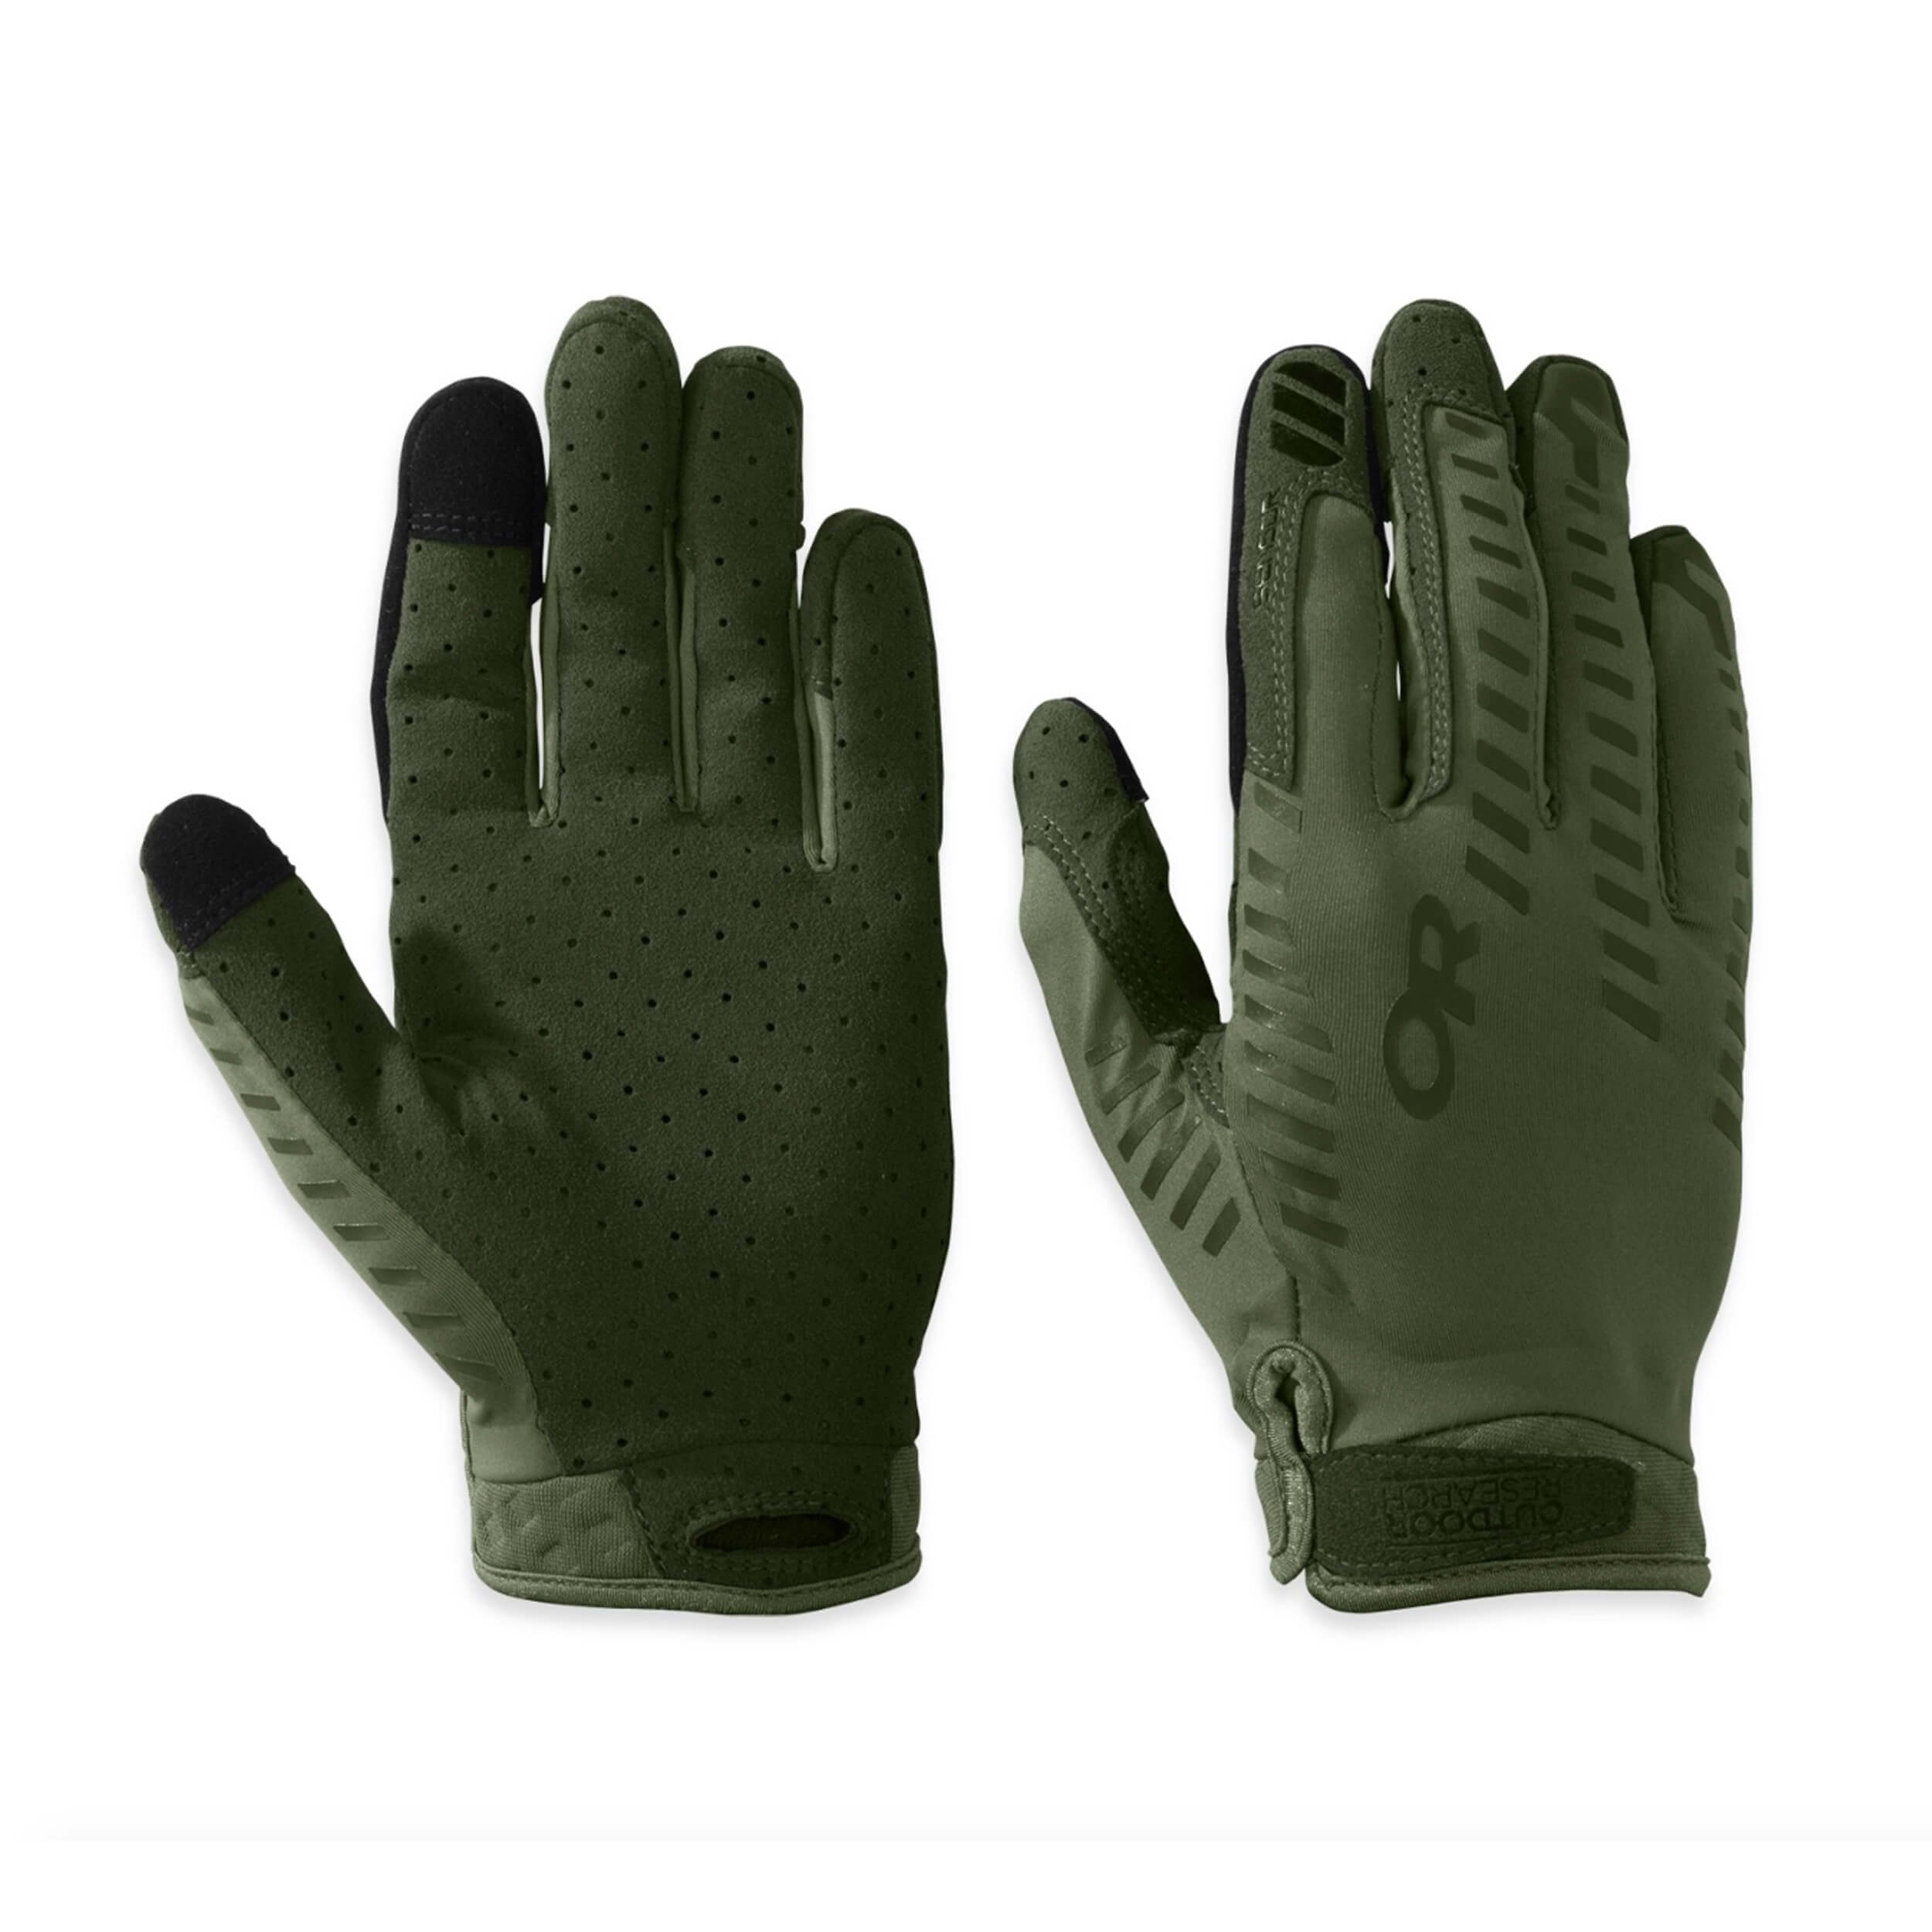 Outdoor Research Aerator Gloves sage-green